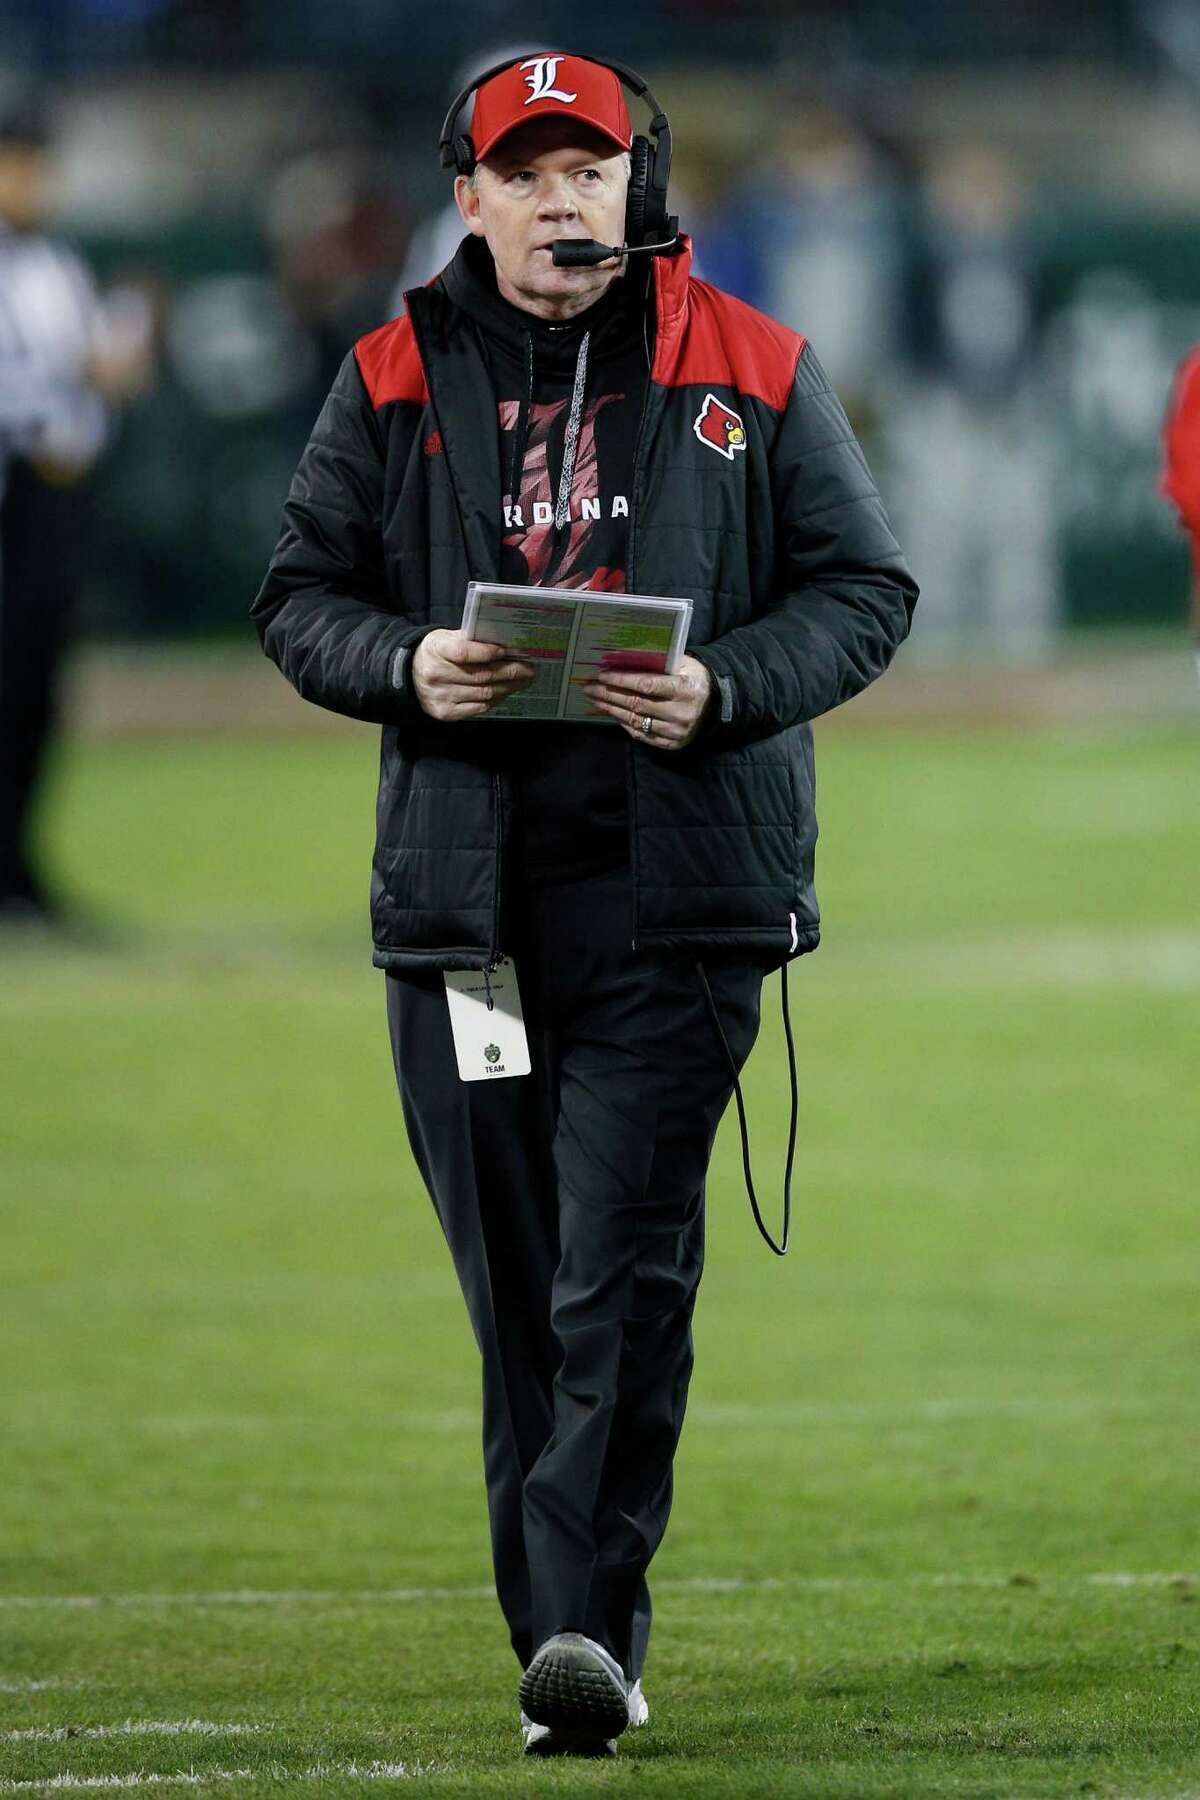 NASHVILLE, TN - DECEMBER 30: Head coach Bobby Petrino of the Louisville Cardinals looks on against the Texas A&M Aggies in the second half of the Franklin American Mortgage Music City Bowl at Nissan Stadium on December 30, 2015 in Nashville, Tennessee.